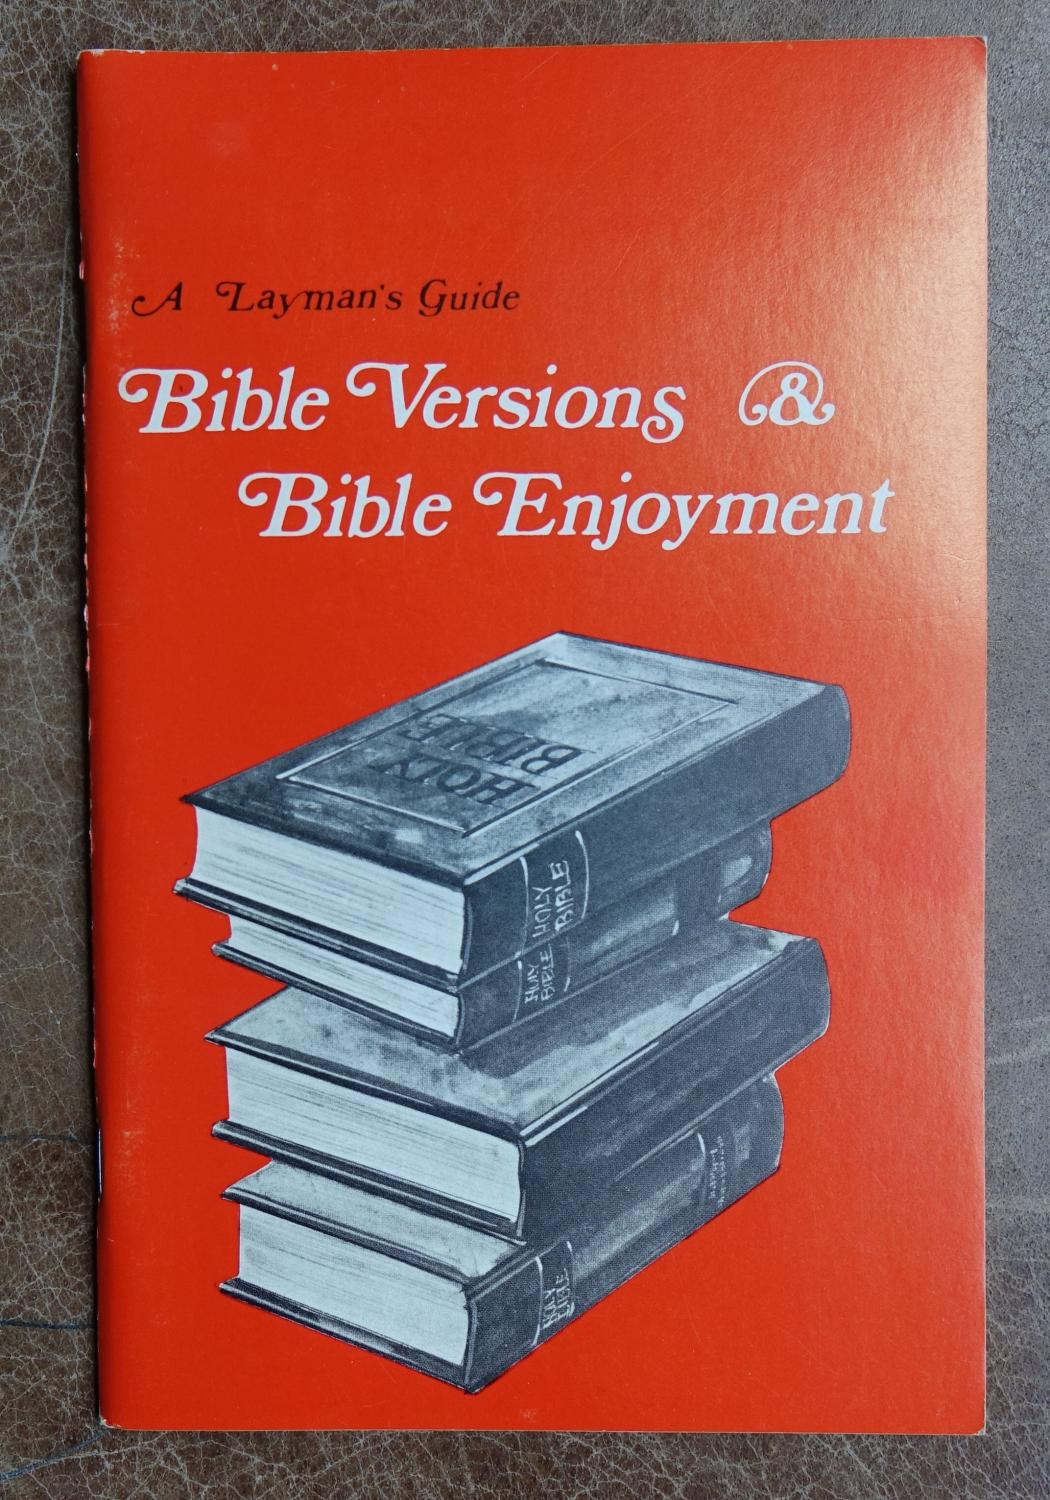 A Layman's Guide To Bible Versions And Bible Enjoyment The Editors Of Eternity Magazine Compilers Very Good Softcover